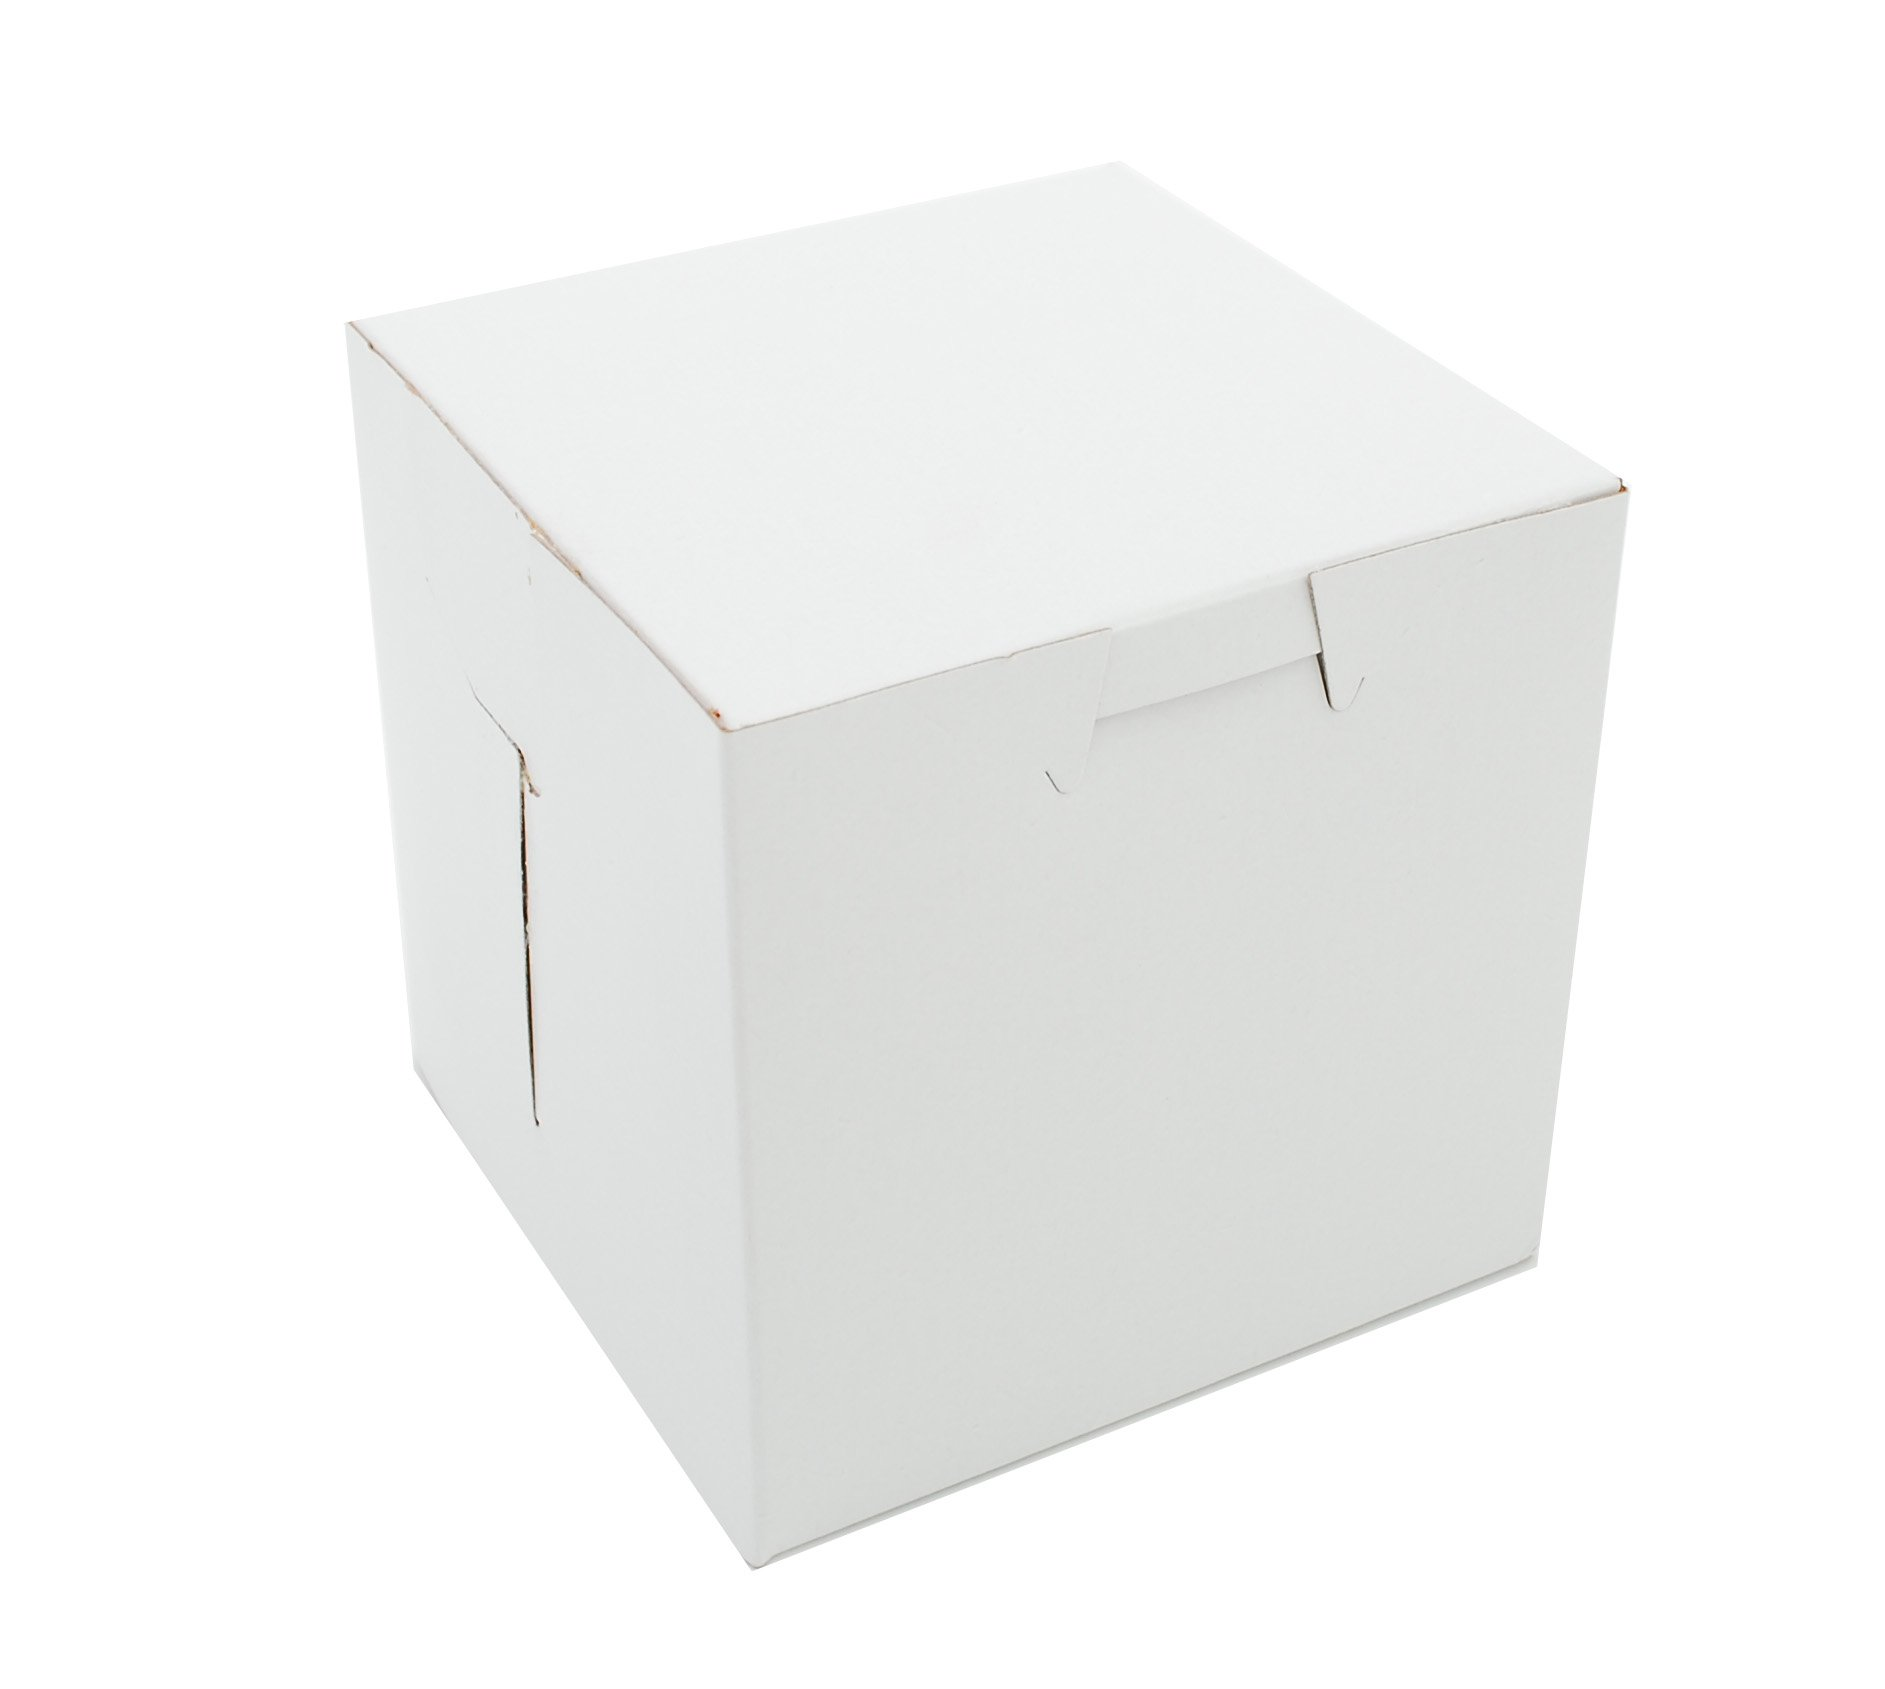 Southern Champion Tray 0907 Premium Clay Coated Kraft Paperboard White Non-Window Lock Corner Bakery Box, 4'' Length x 4'' Width x 4'' Height (Case of 200)